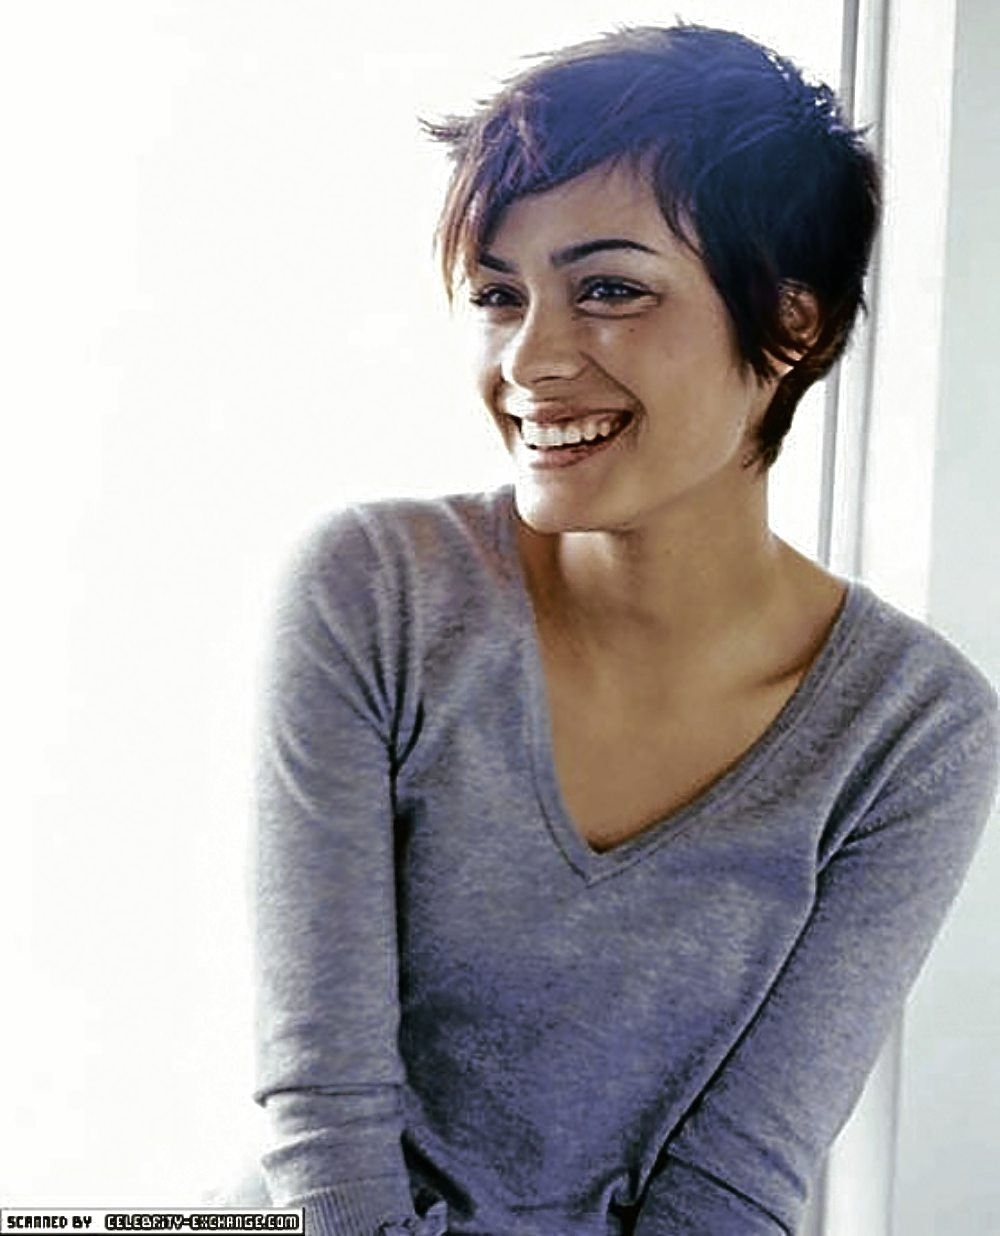 Pixie Haircut For Thick Curly Hair 1000+ Images About Pixie Cut On Regarding Latest Pixie Hairstyles For Thick Wavy Hair (View 10 of 15)